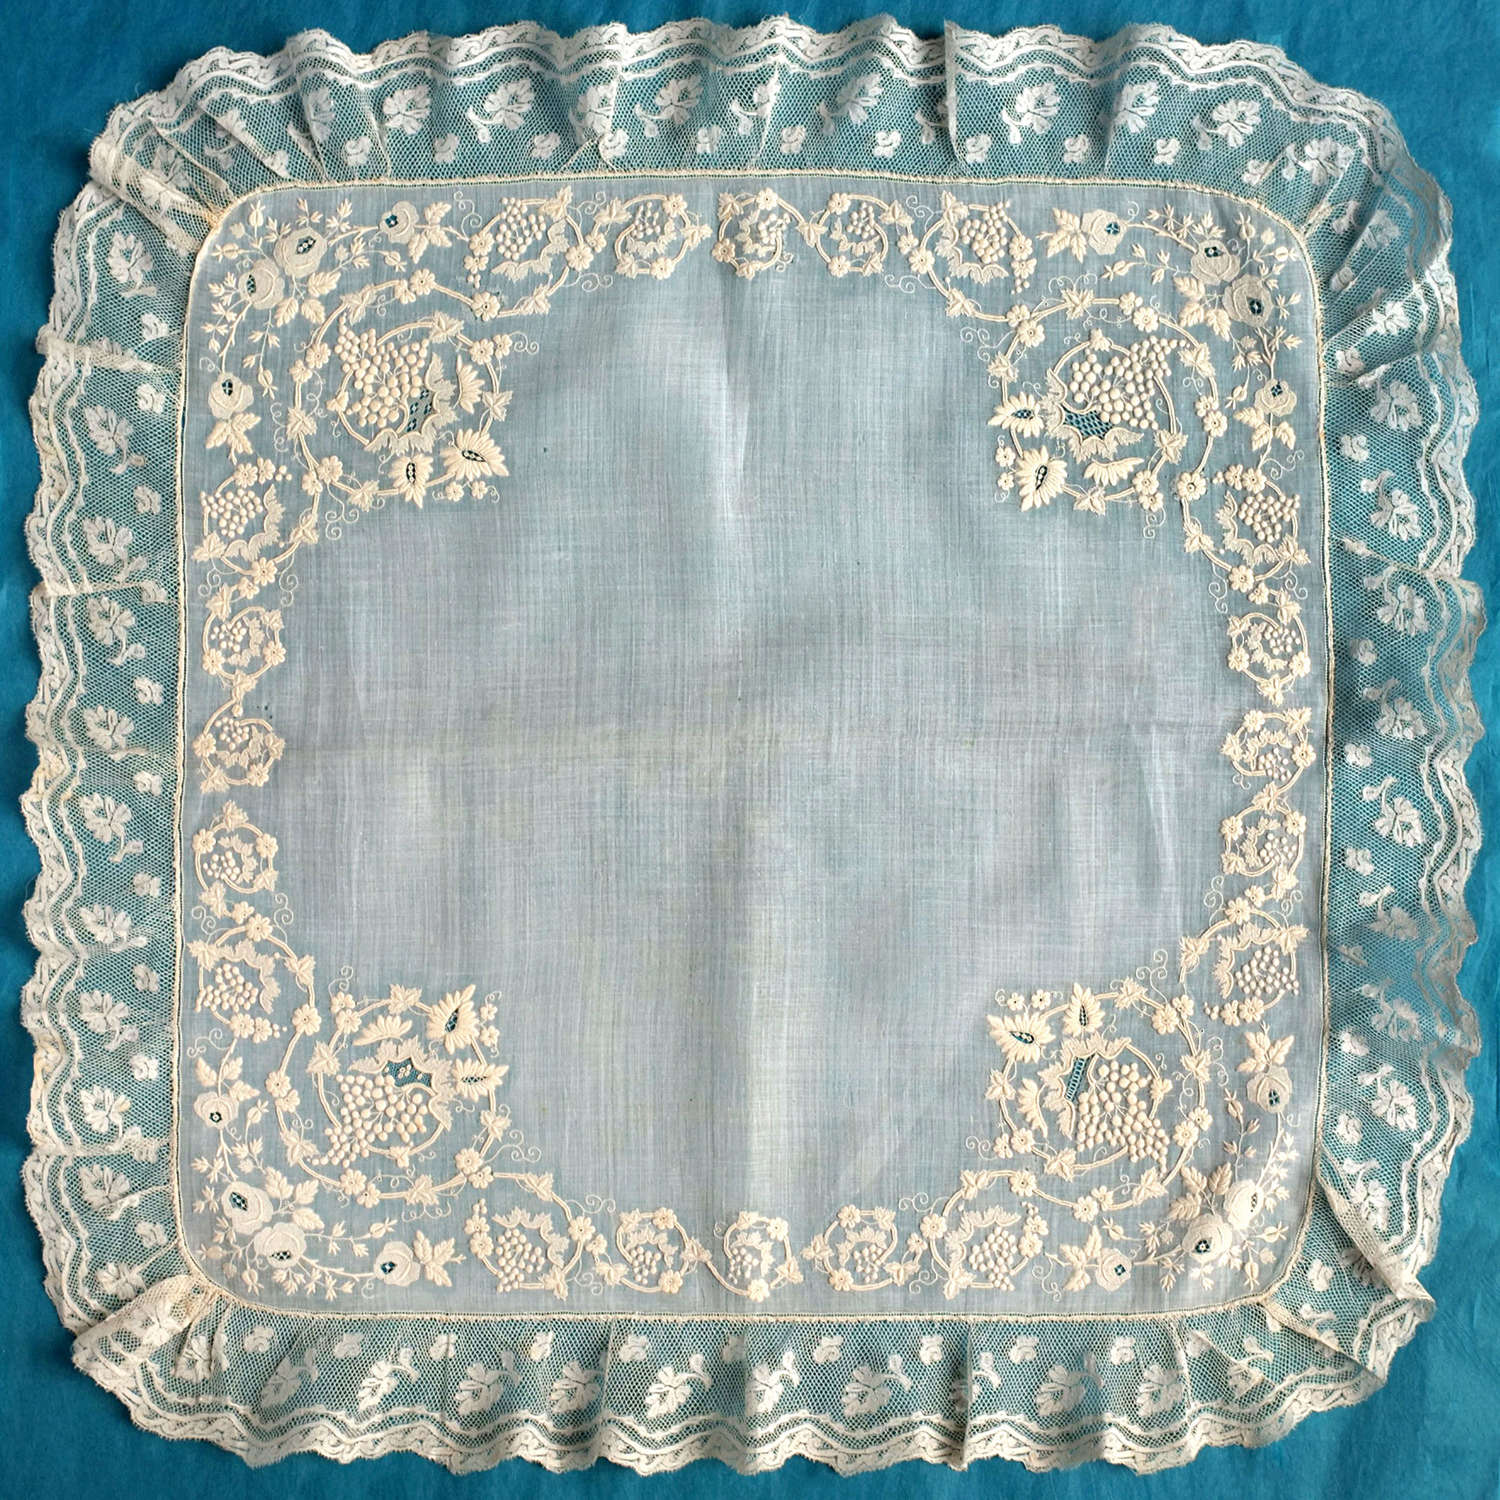 19th Century Embroidered Handkerchief with Vines & Grapes